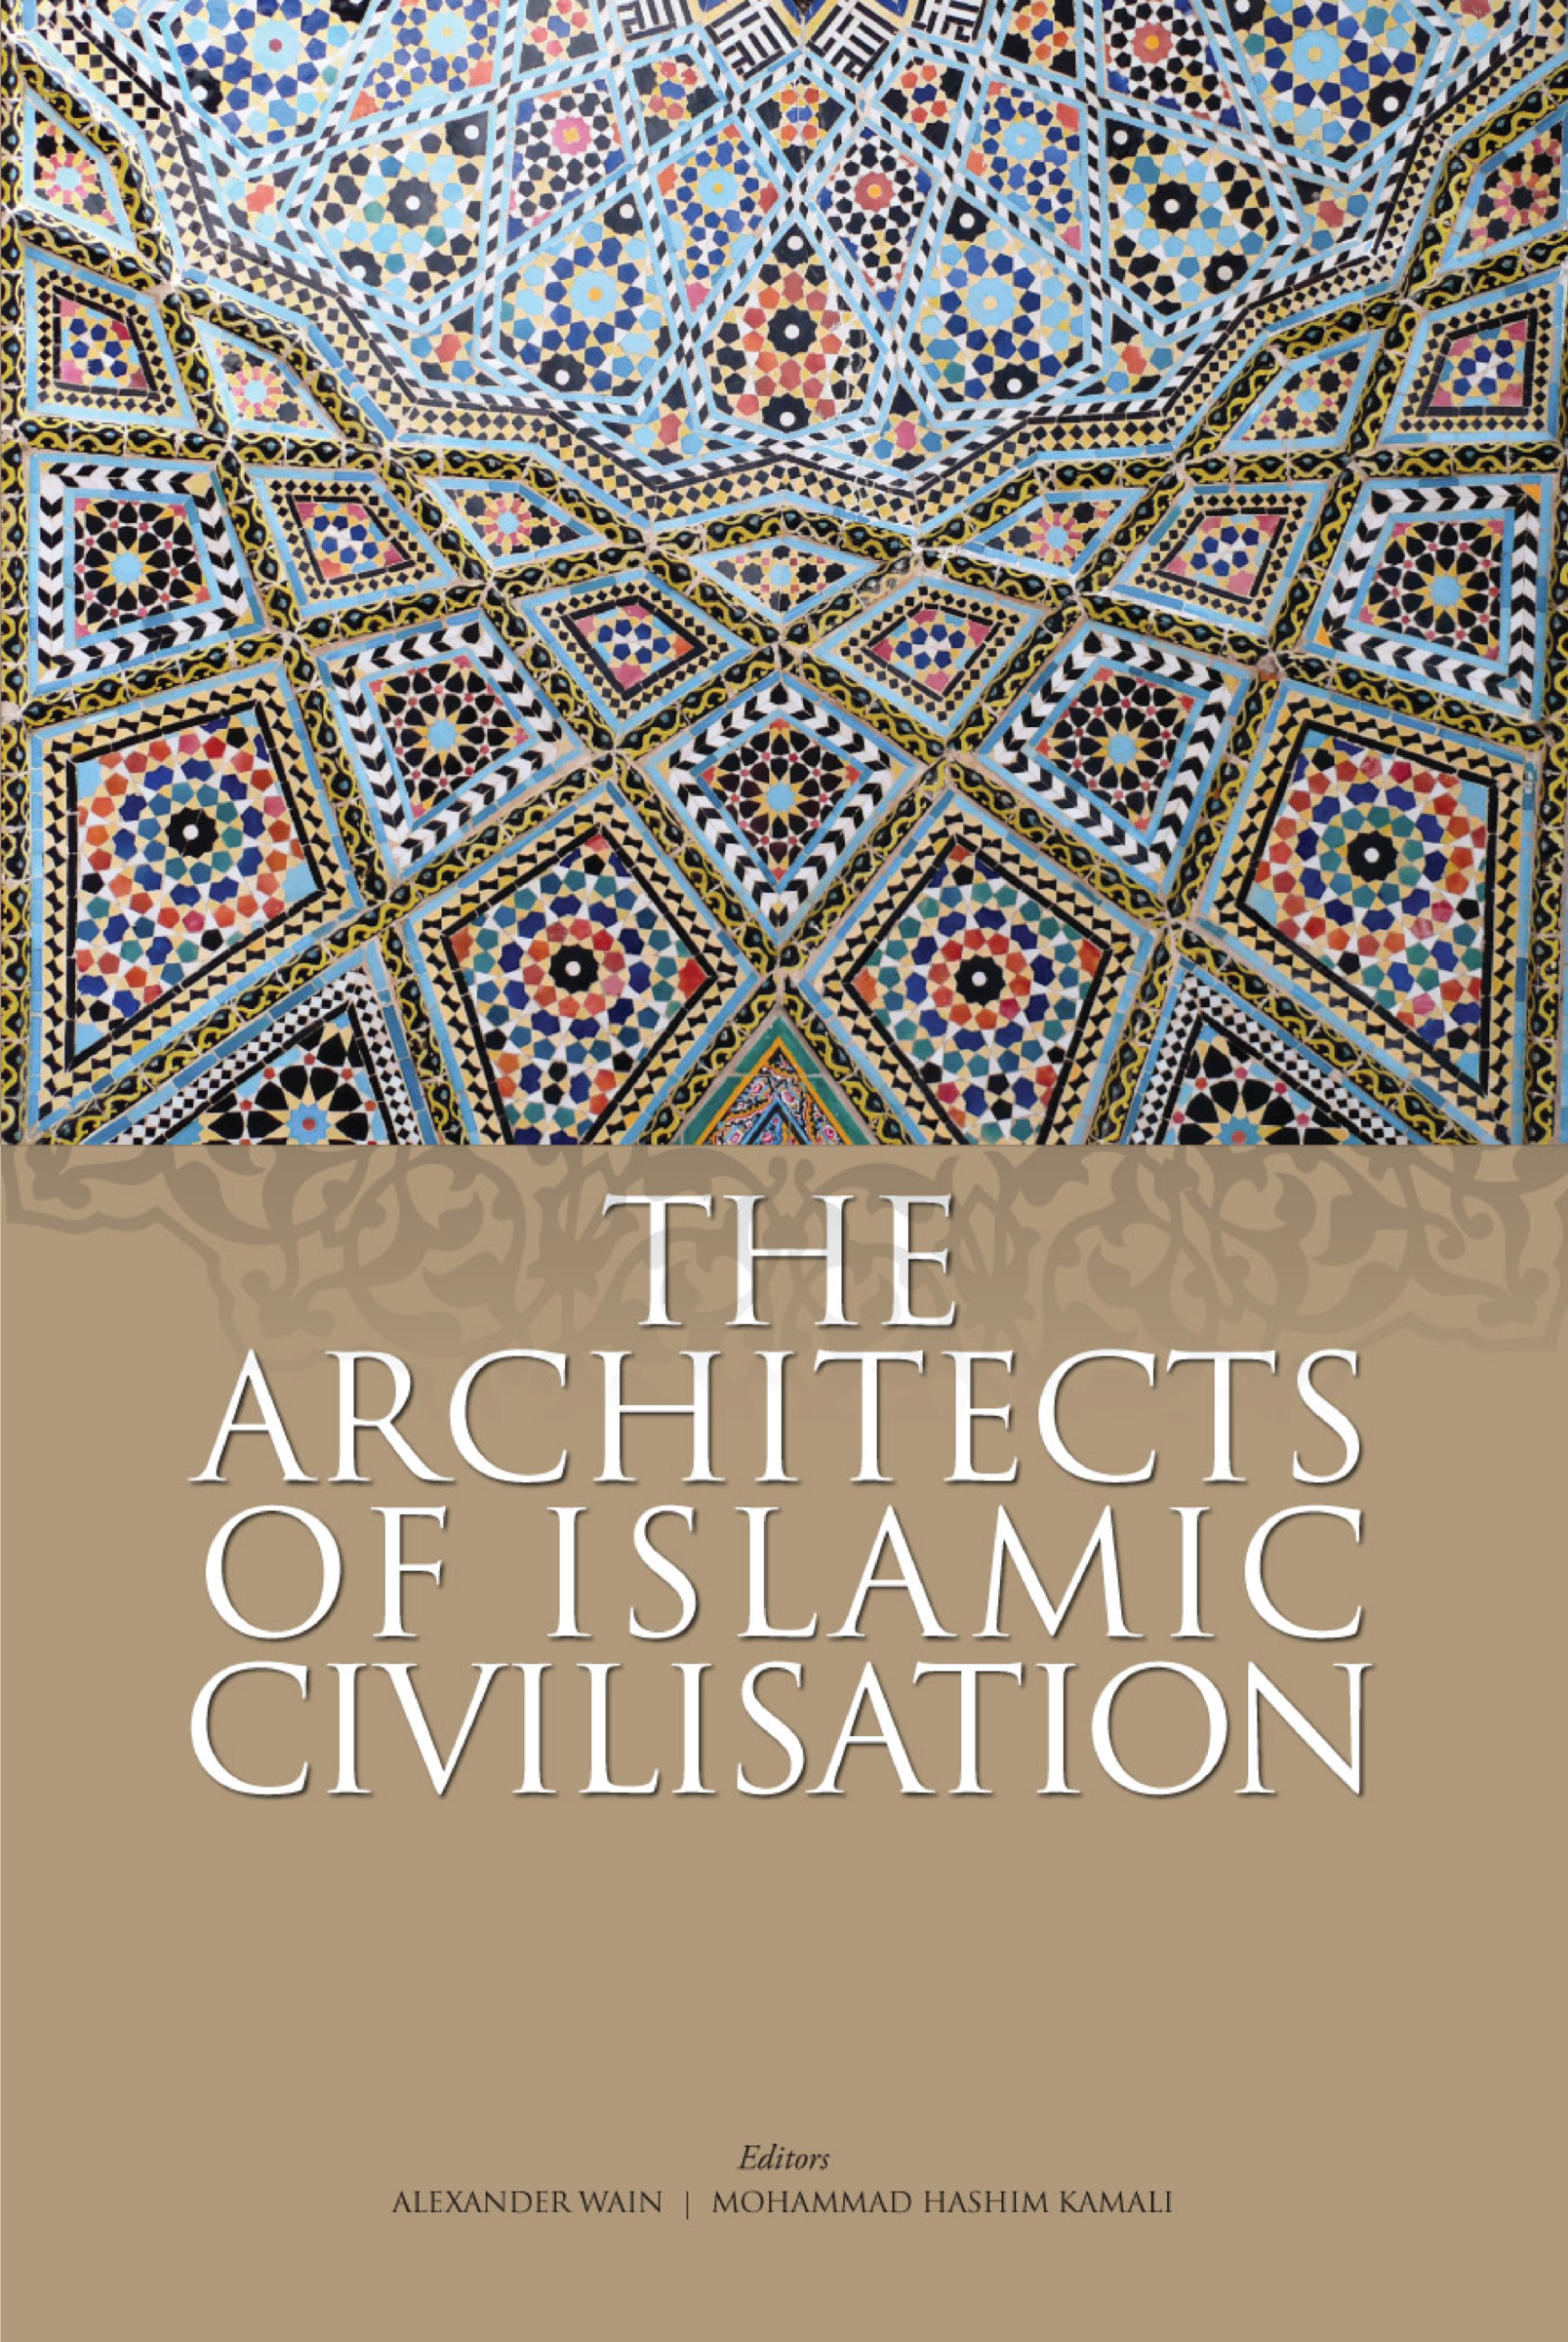 The Architects of Islamic Civilisation New.png